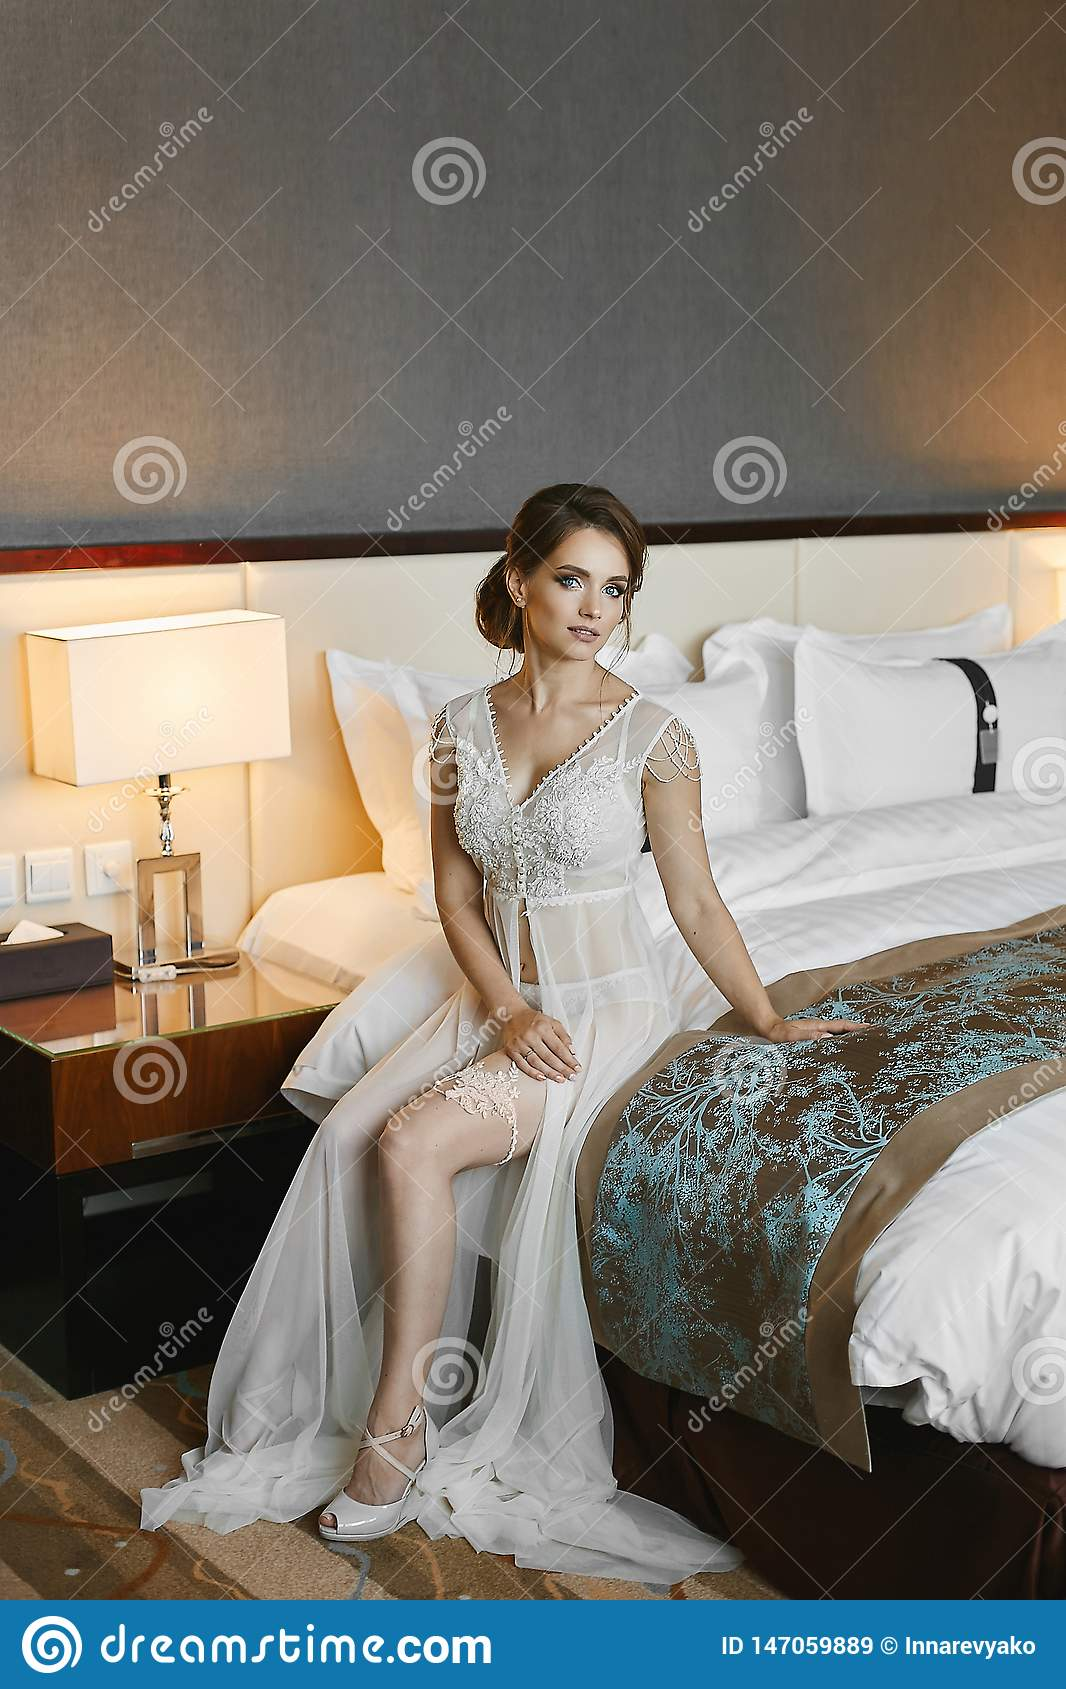 Sexy Naked Legs Young Fit Female Stock Images - Download 50 Royalty Free Photos-4748